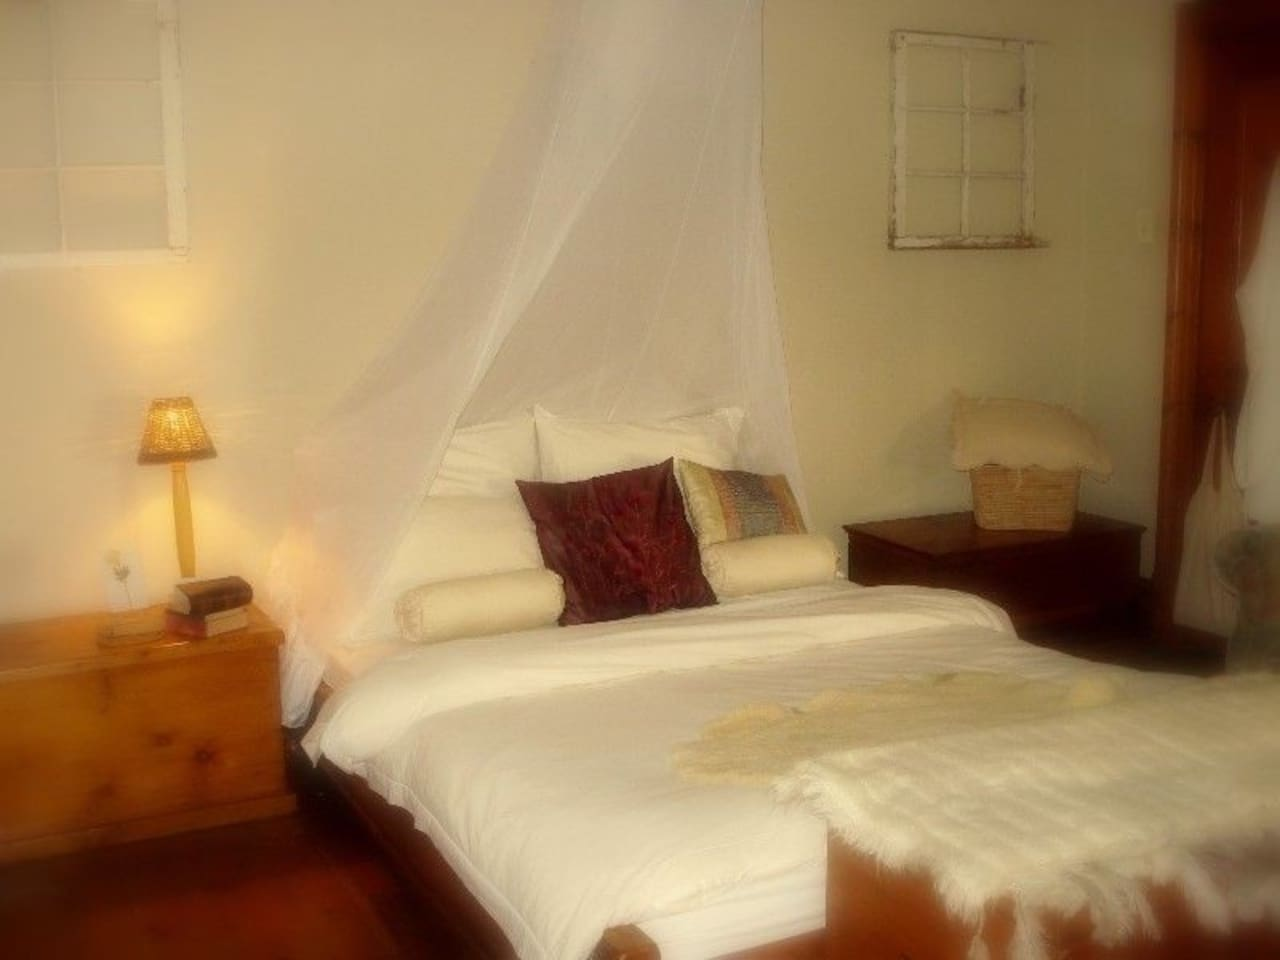 Vintage Victorian cottage - Main Bedroom - where beauty sleep awaits - melsplaceobs@gmail.com